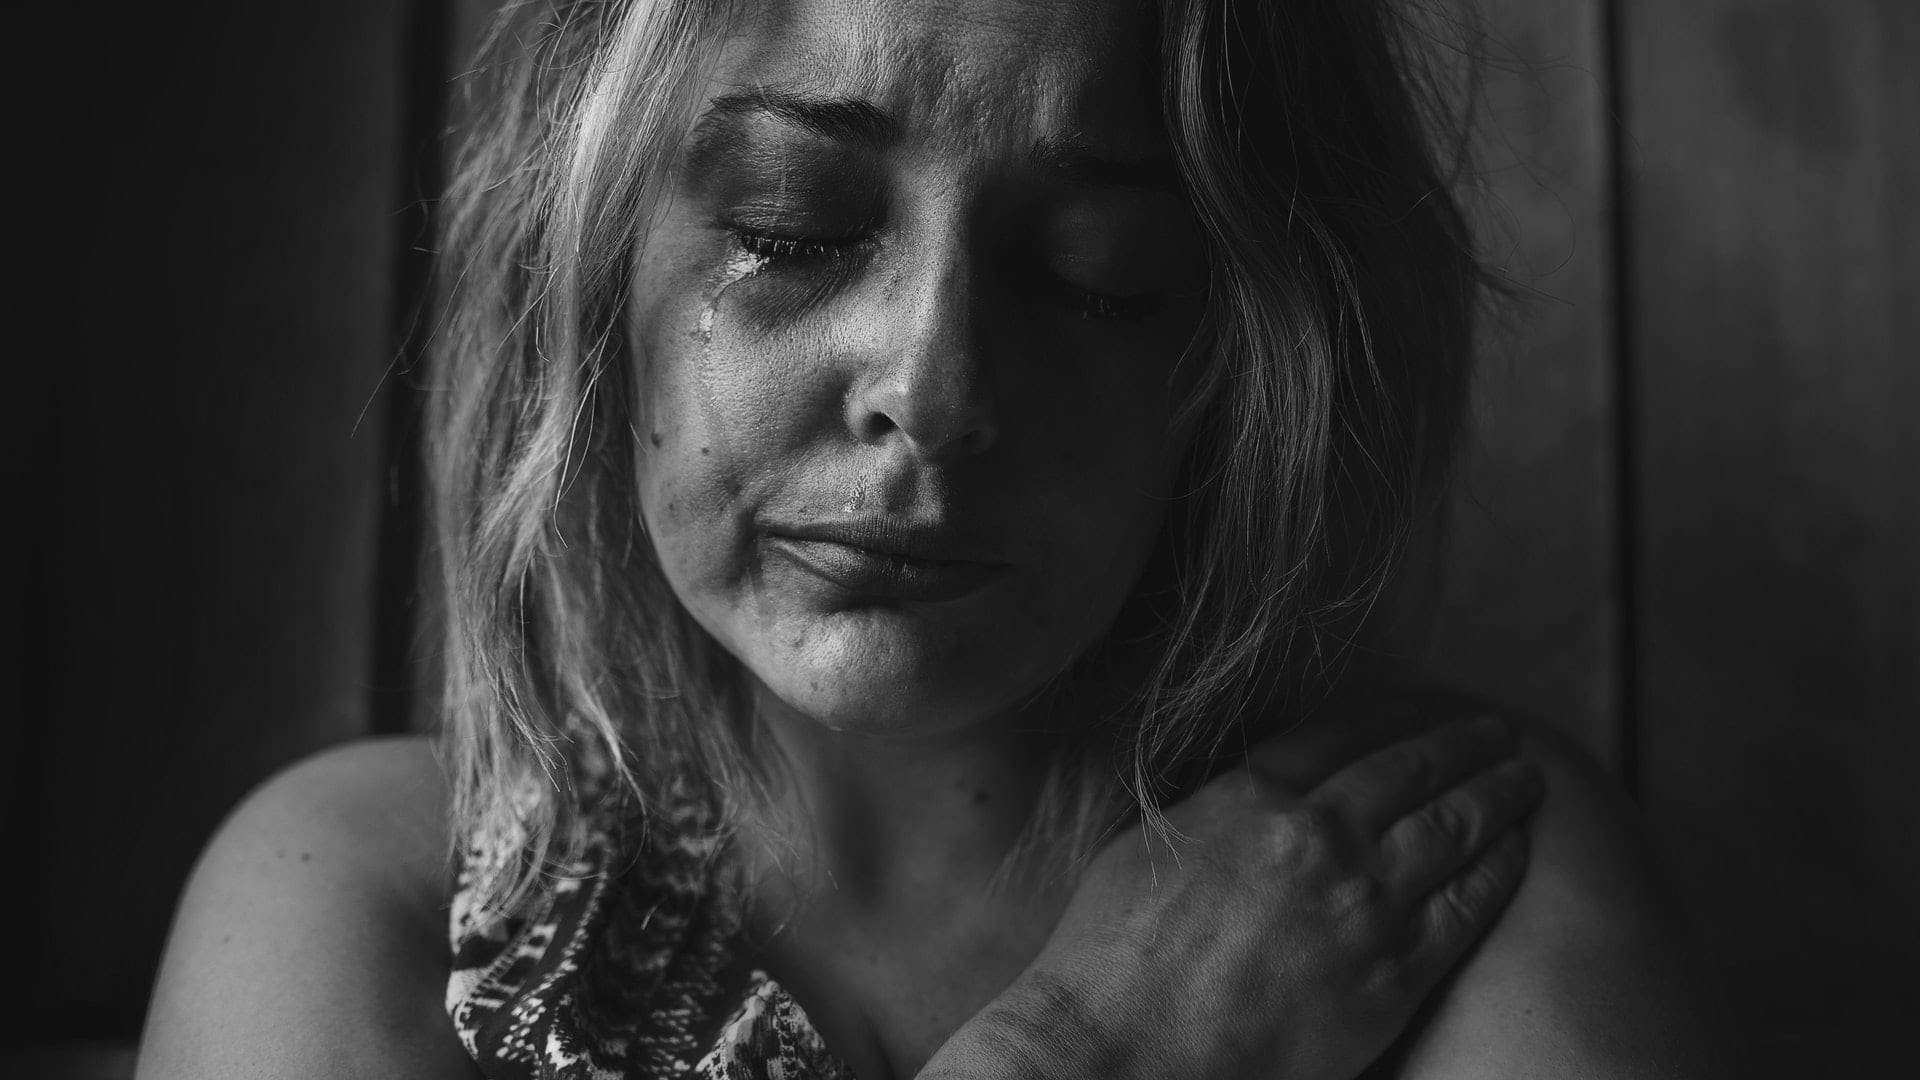 Woman crying in black and white